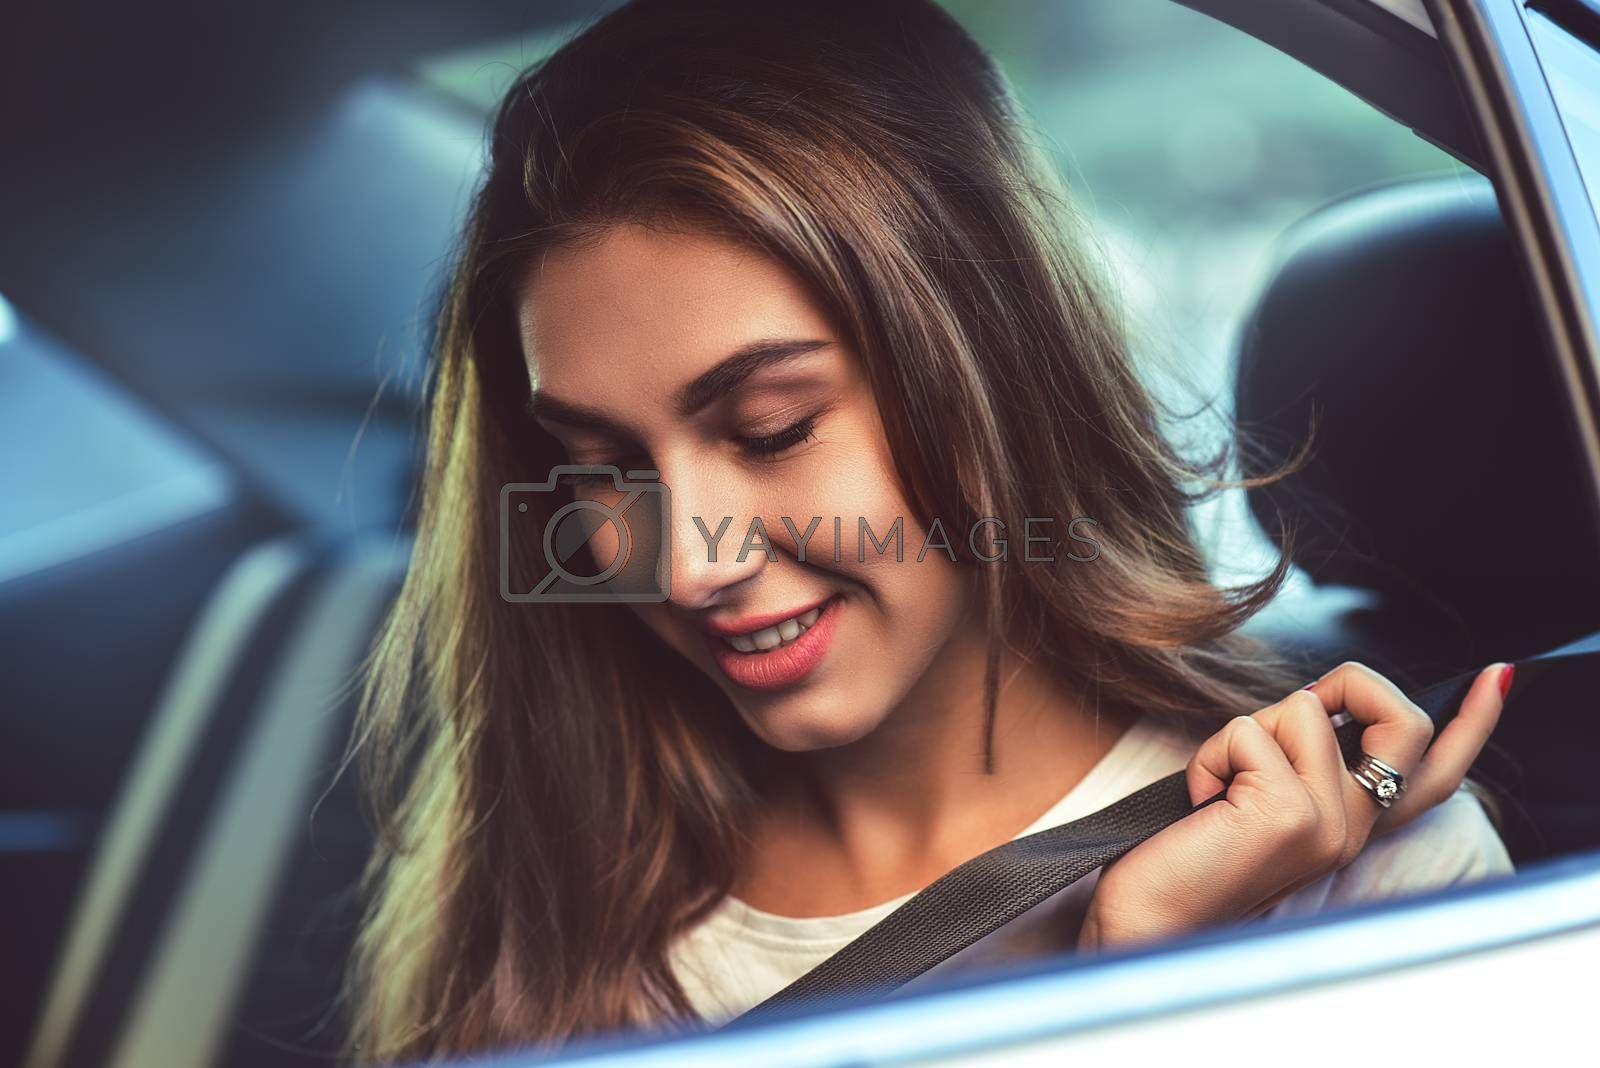 Attractive woman in car by Nickstock